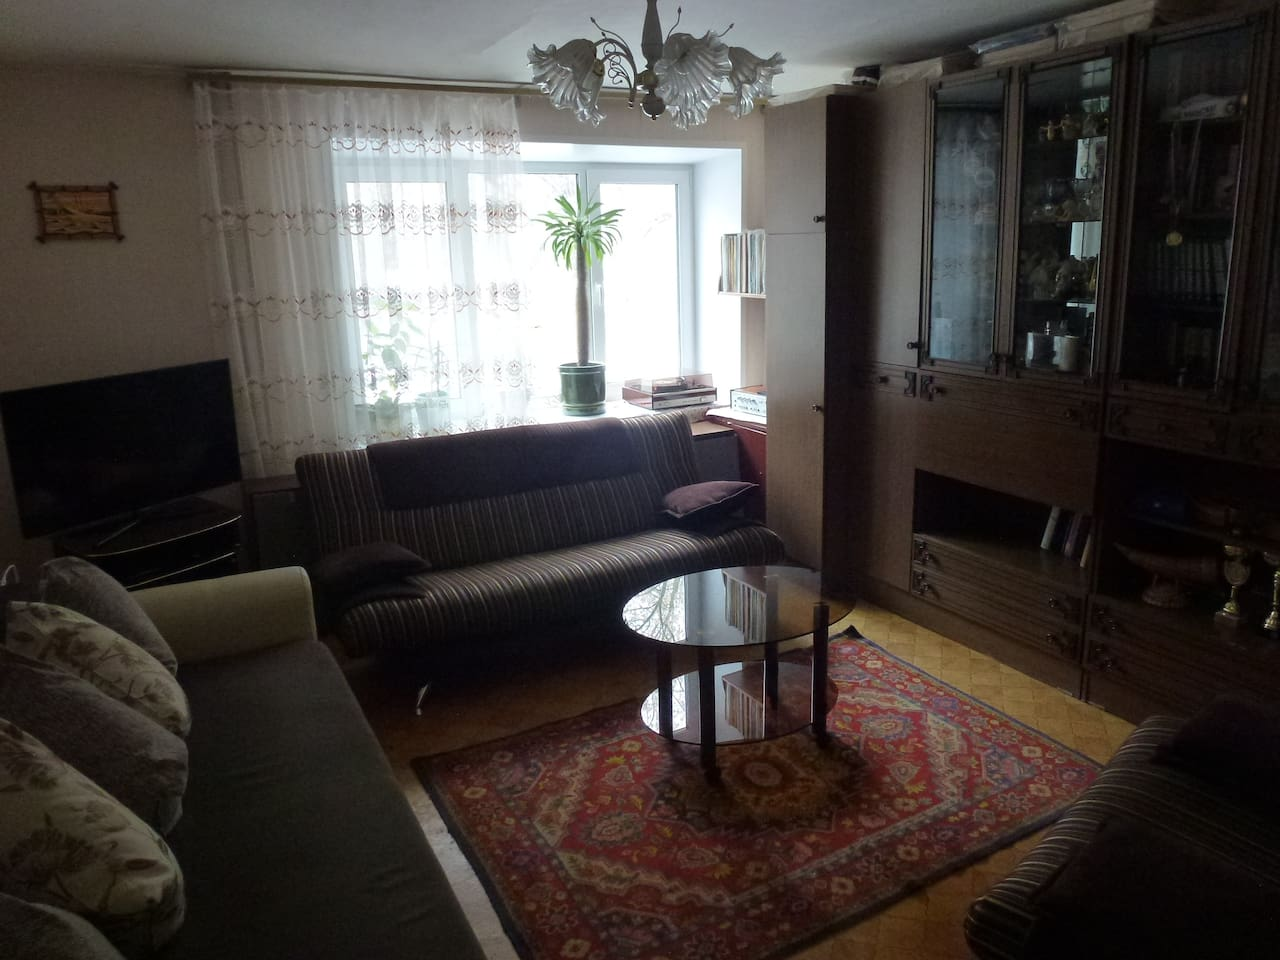 Large and sunny living room. Could create more of free space by taking front sofa away. Grate to spend evening with company using both.